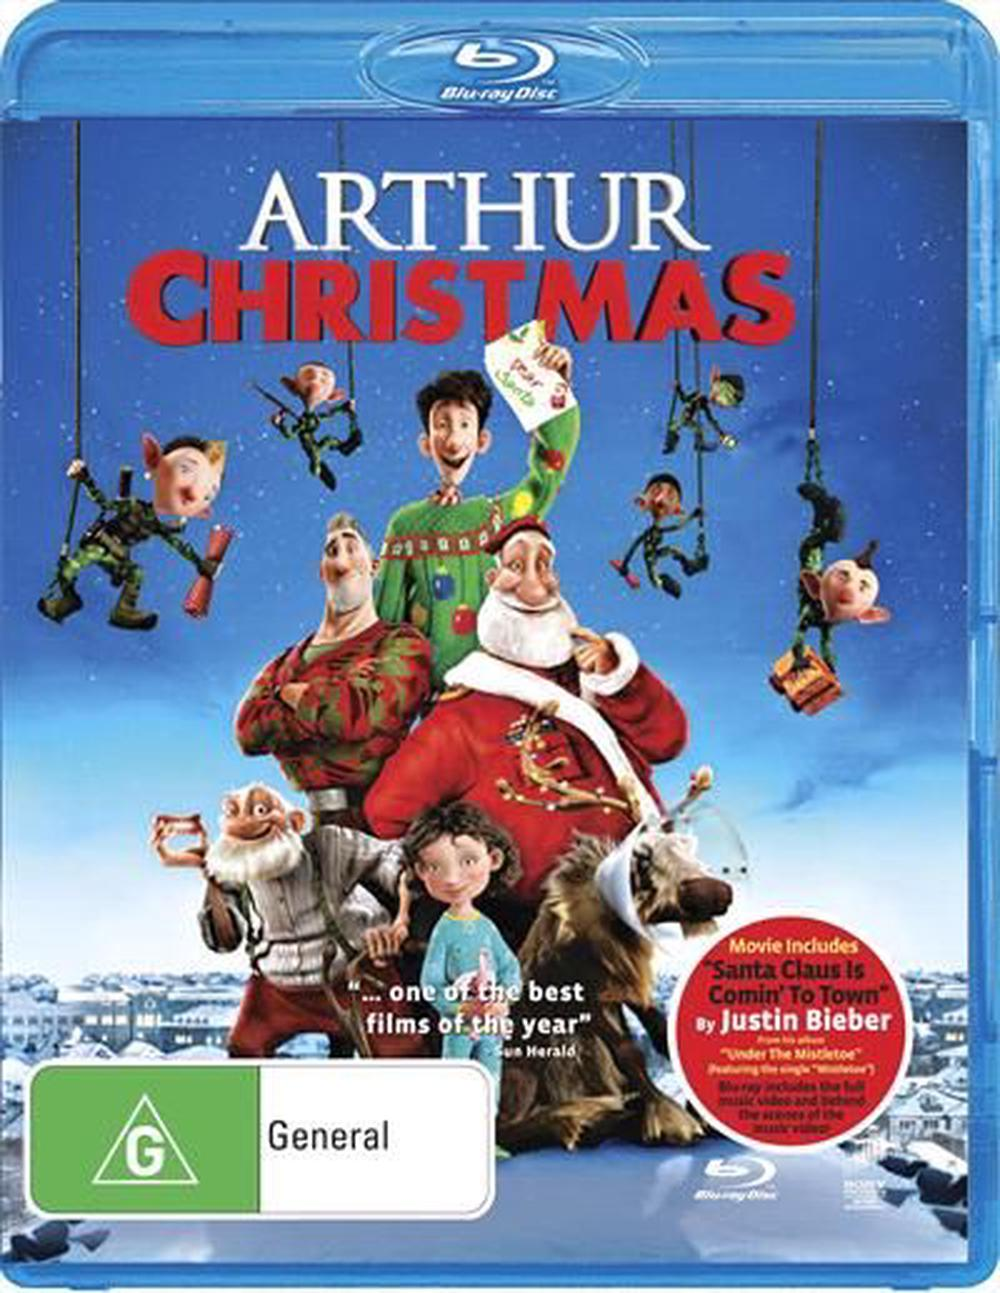 Arthur Christmas, Blu Ray | Buy online at The Nile